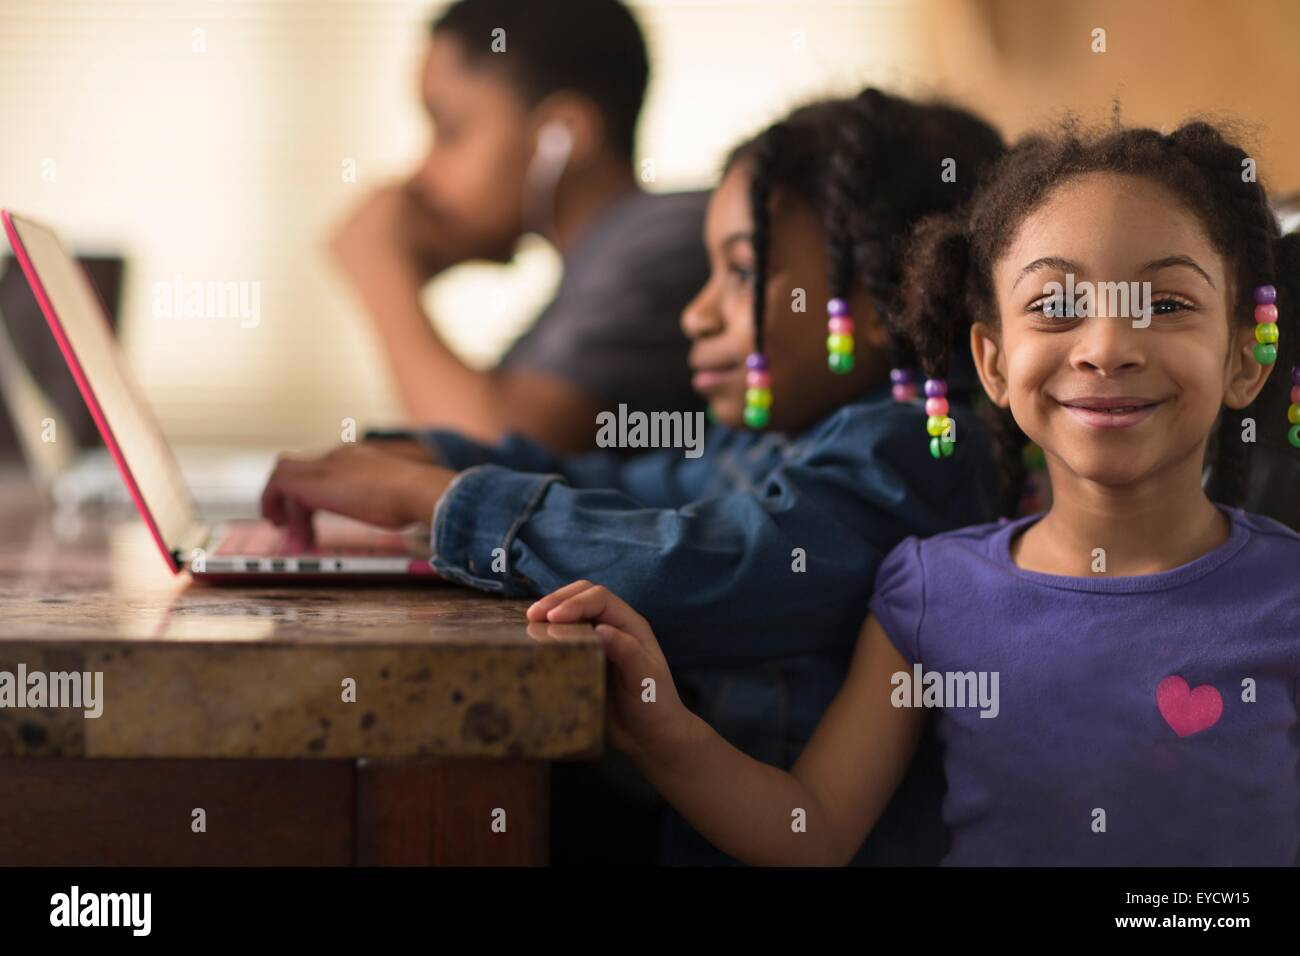 Portrait of girl at dining table and siblings using laptops - Stock Image